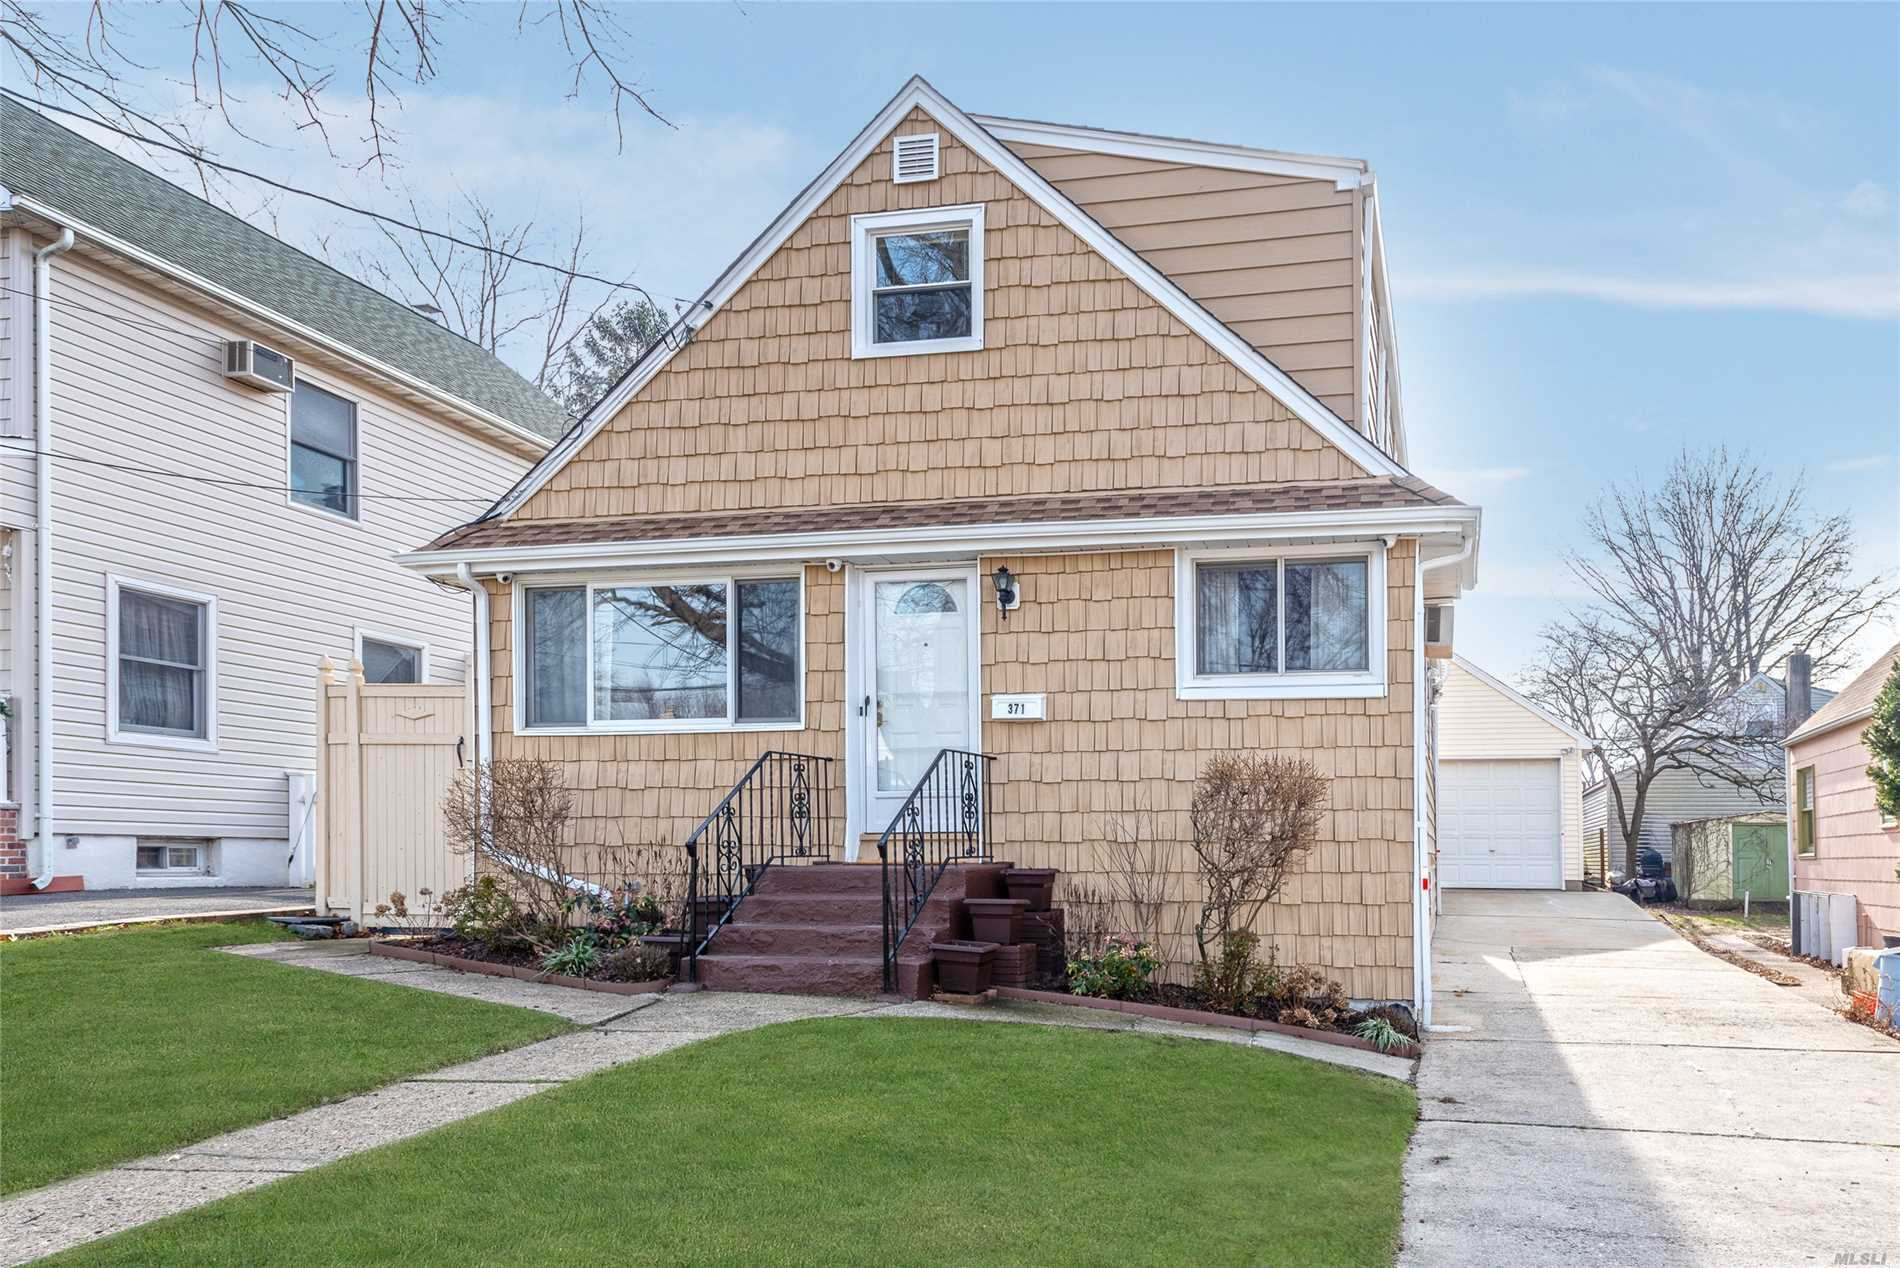 W. Hempstead 4 Bedroom 2 Bath Updated Cape. Kit, Dining Area, Living Room Full Finished Basement With Outside Entrance To The Yard. Hardwood Floors Throughout. Gas Hot Water Heater And With Oil Heat. 1.5 Car Garage With A Long Driveway. Close To Shops.